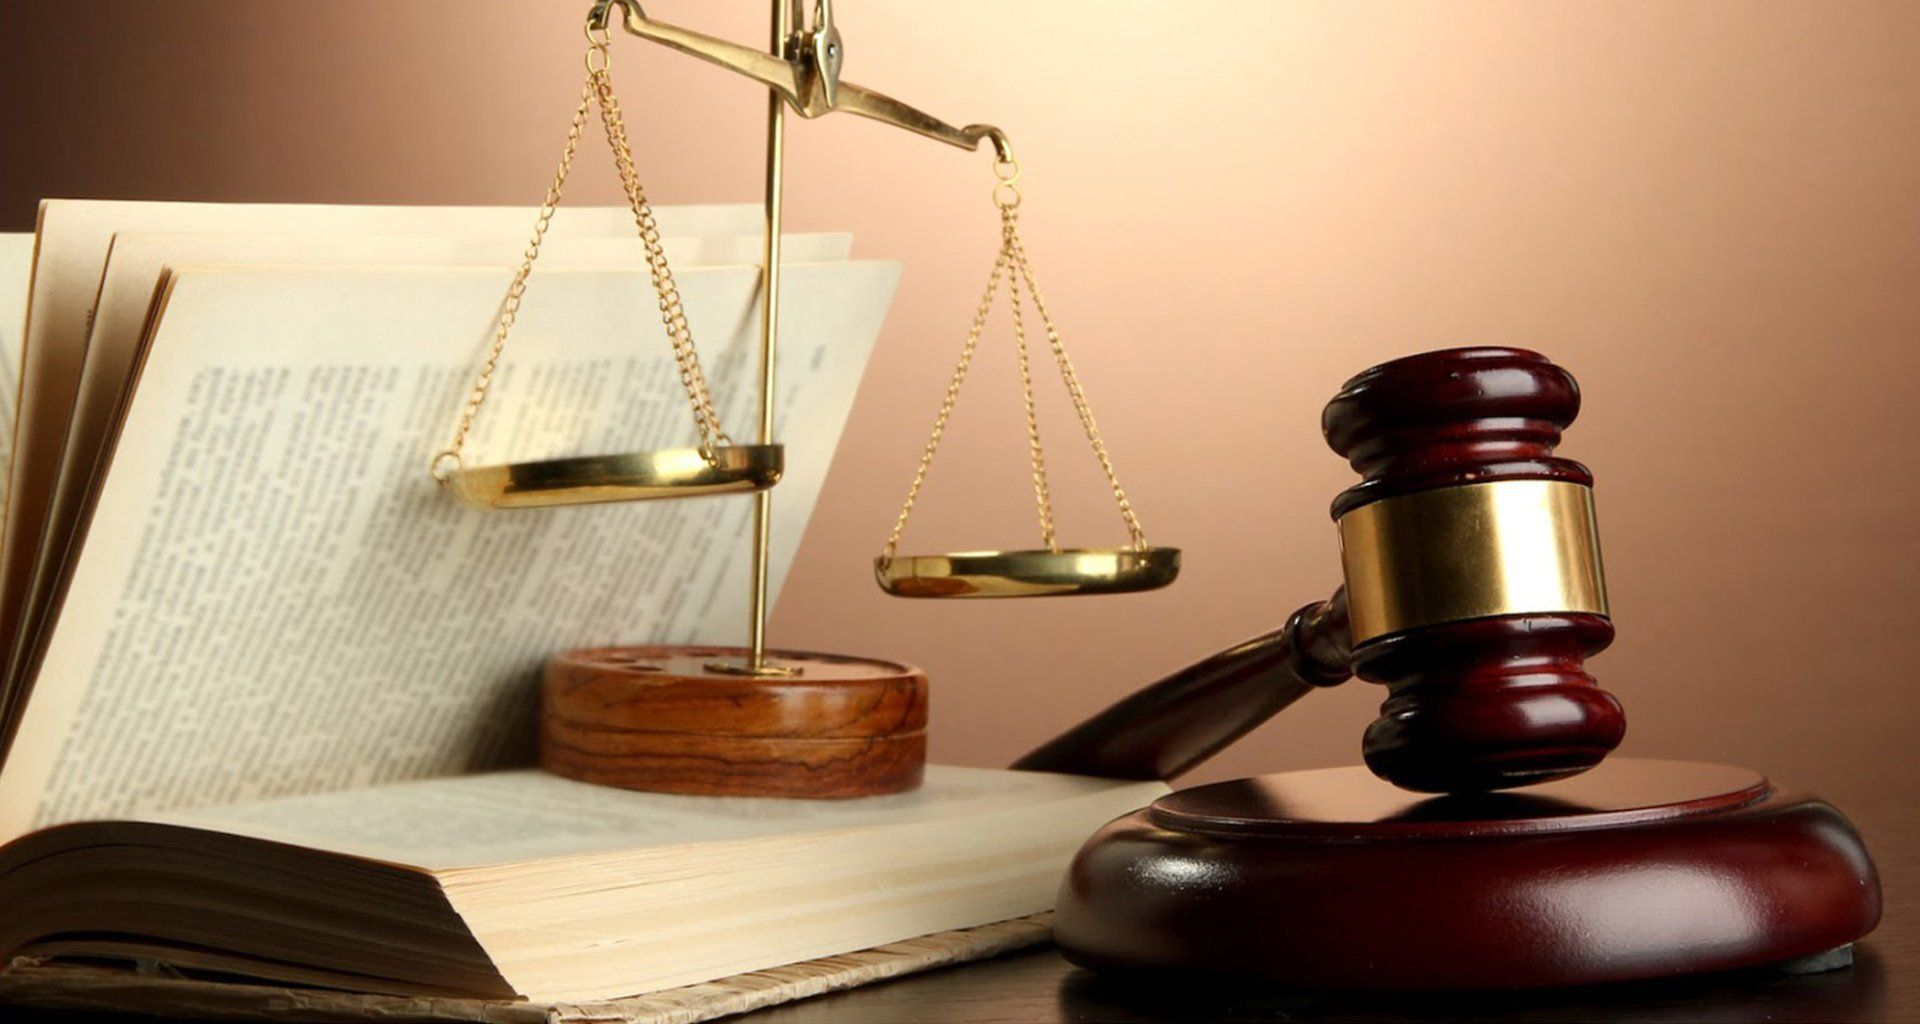 Medicare Investigations Personal Injury Lawyer Personal Injury Injury Lawyer